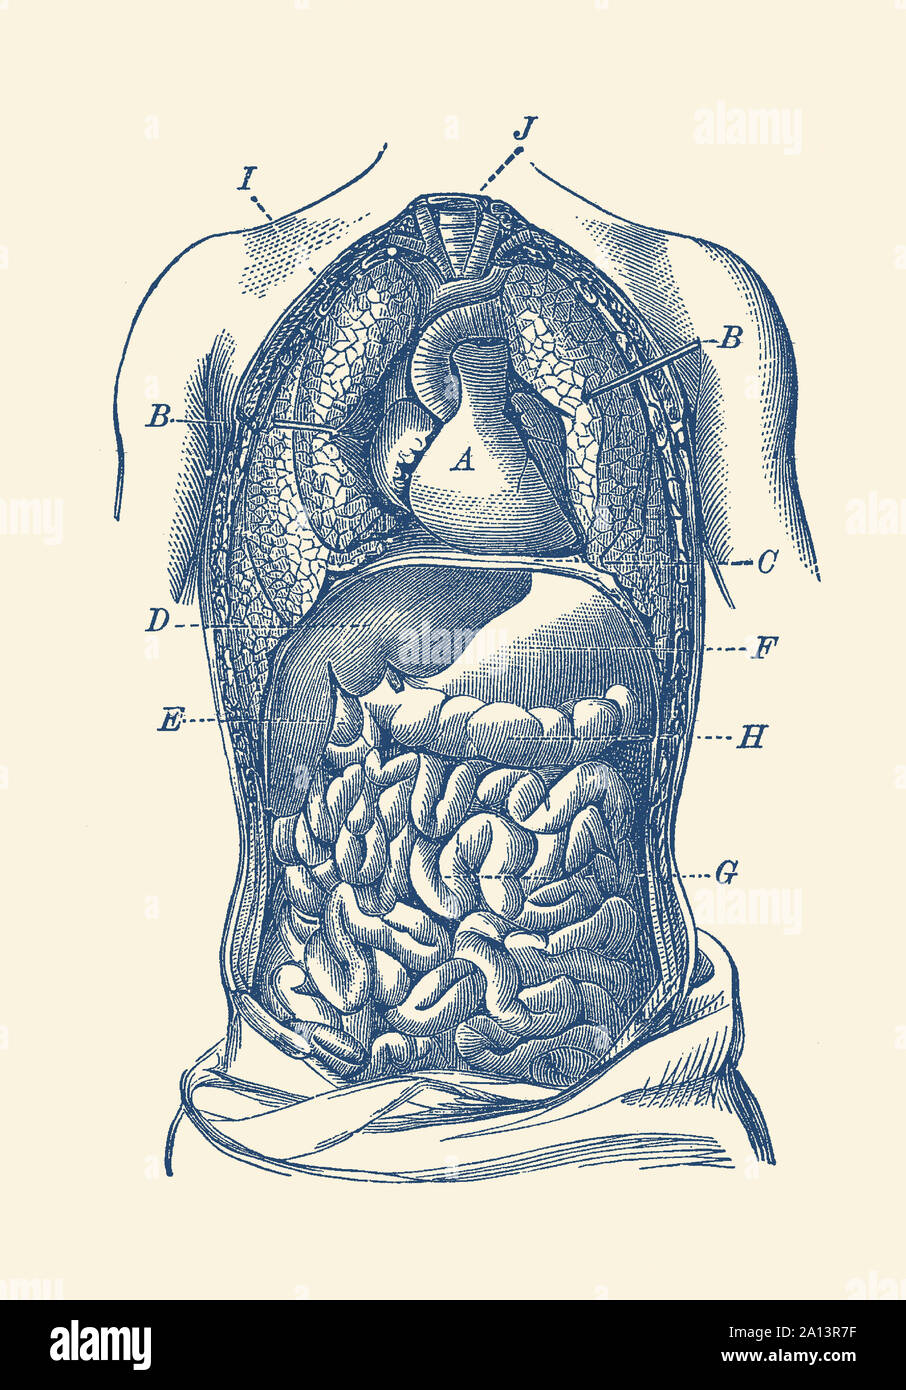 Vintage Diagram The Human Digestive System Showcasing The